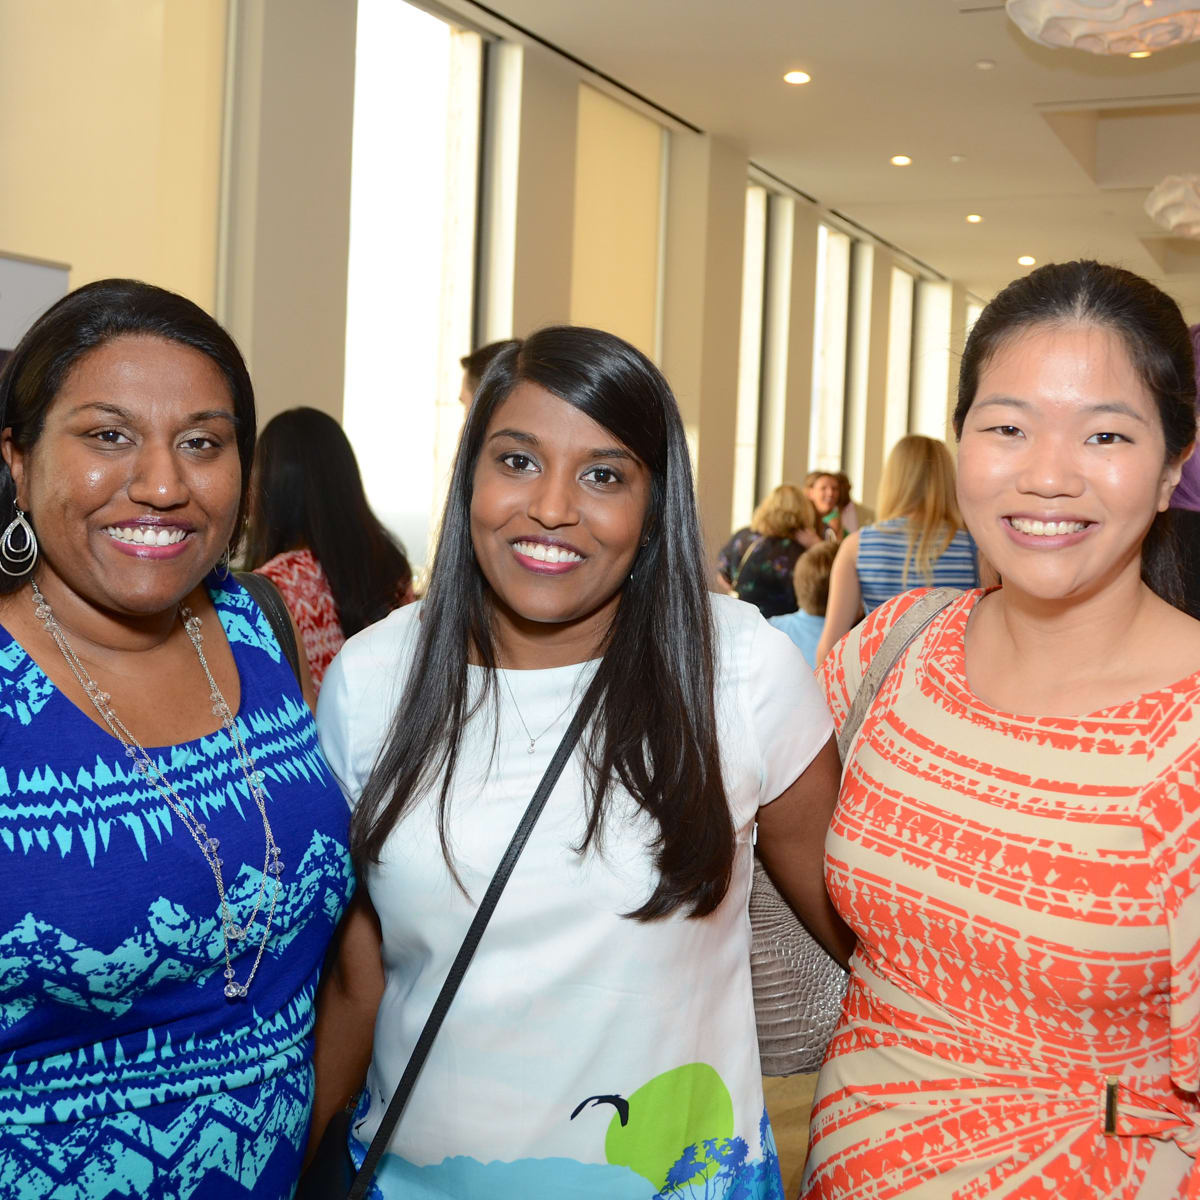 YP Zoo Aug 2015 Anita Udayamurthy, Michelle Udayamurthy, Ashley Nguyen